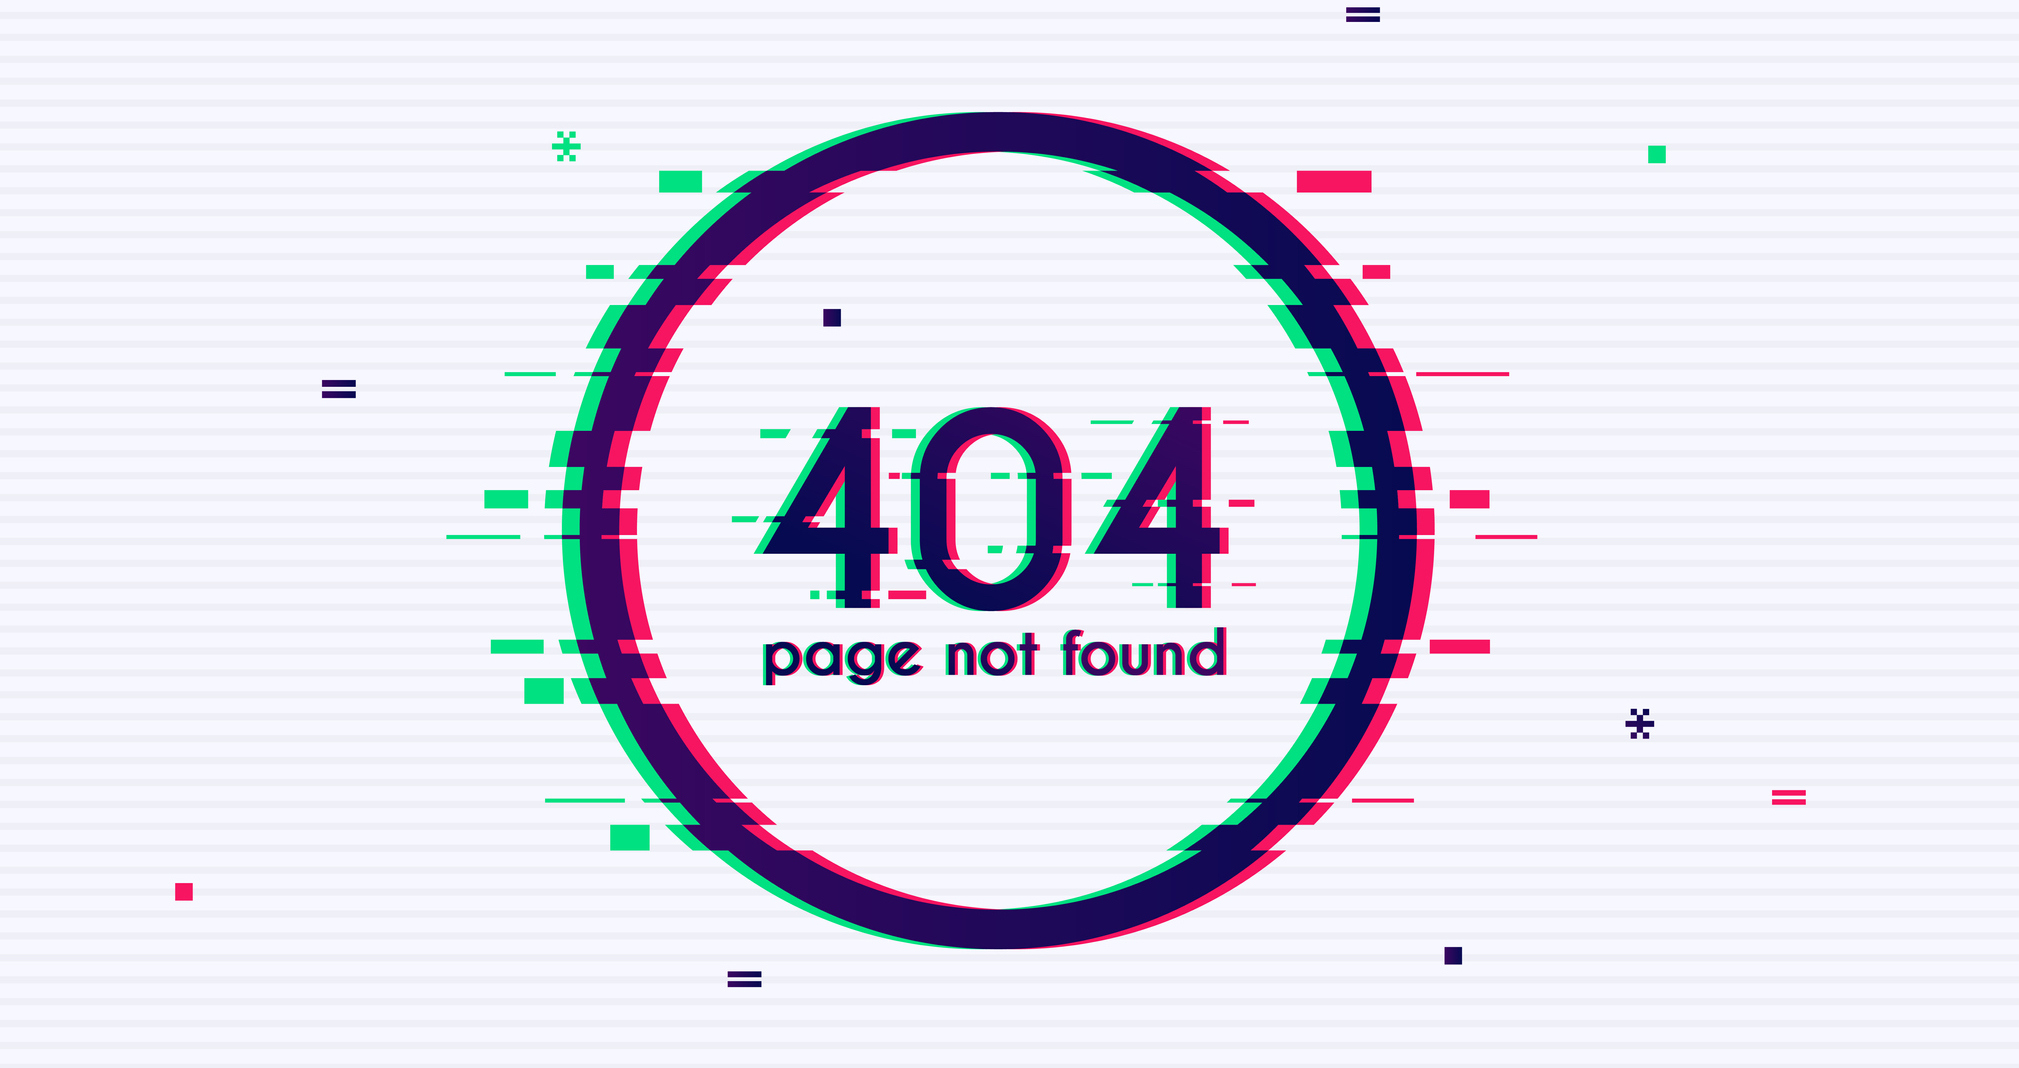 Error with glitch effect on screen. Error 404 page not found. Flat design modern vector illustration concept.